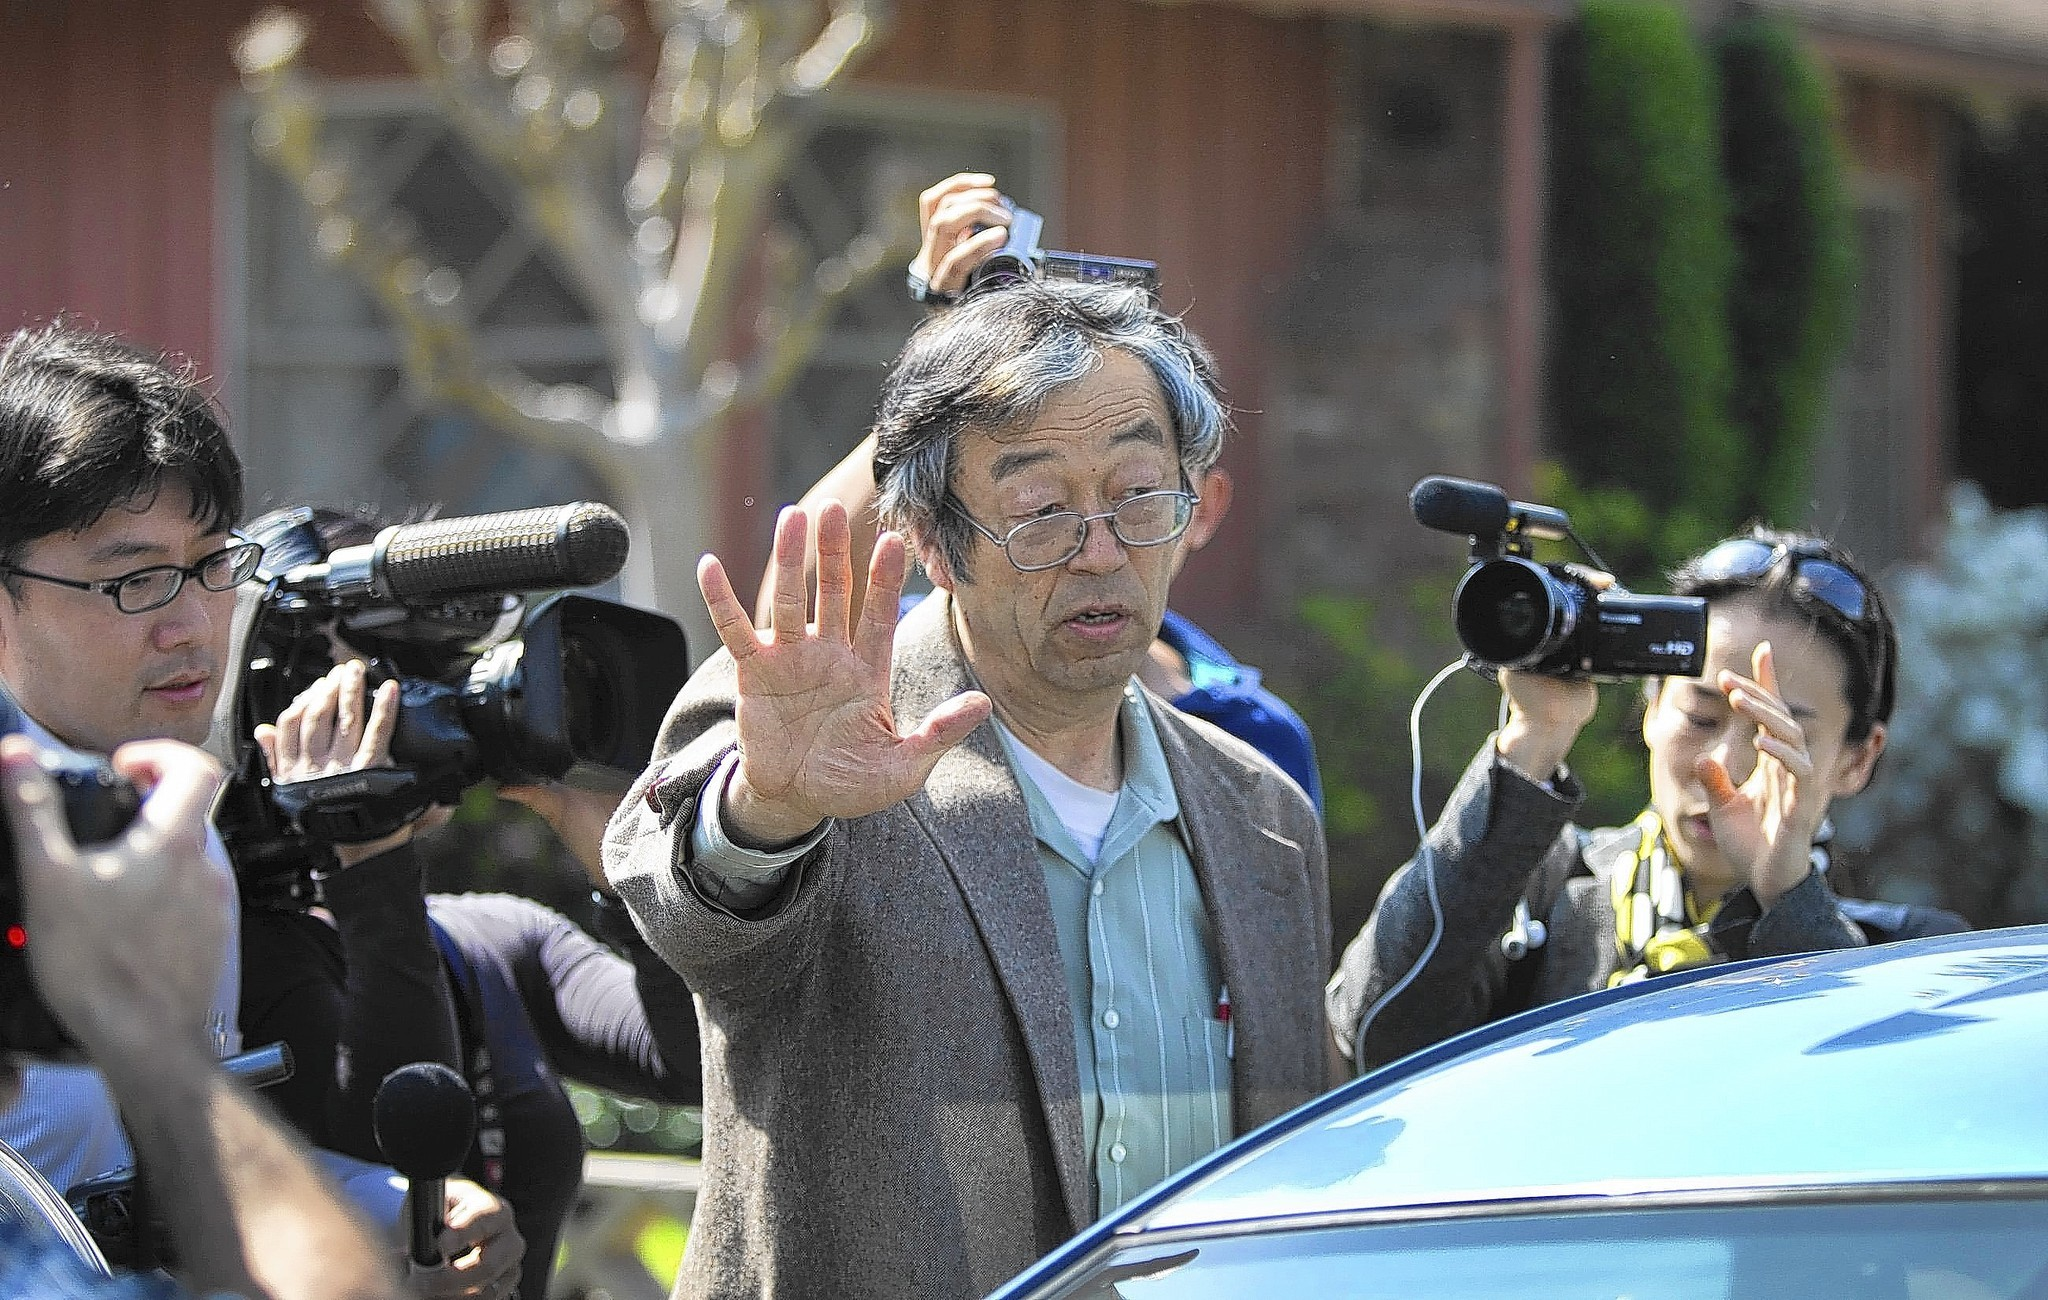 Journalists surround Dorian Satoshi Nakamoto as he emerges from his Temple City house amid a frenzy of speculation that he is the creator of the virtual currency.